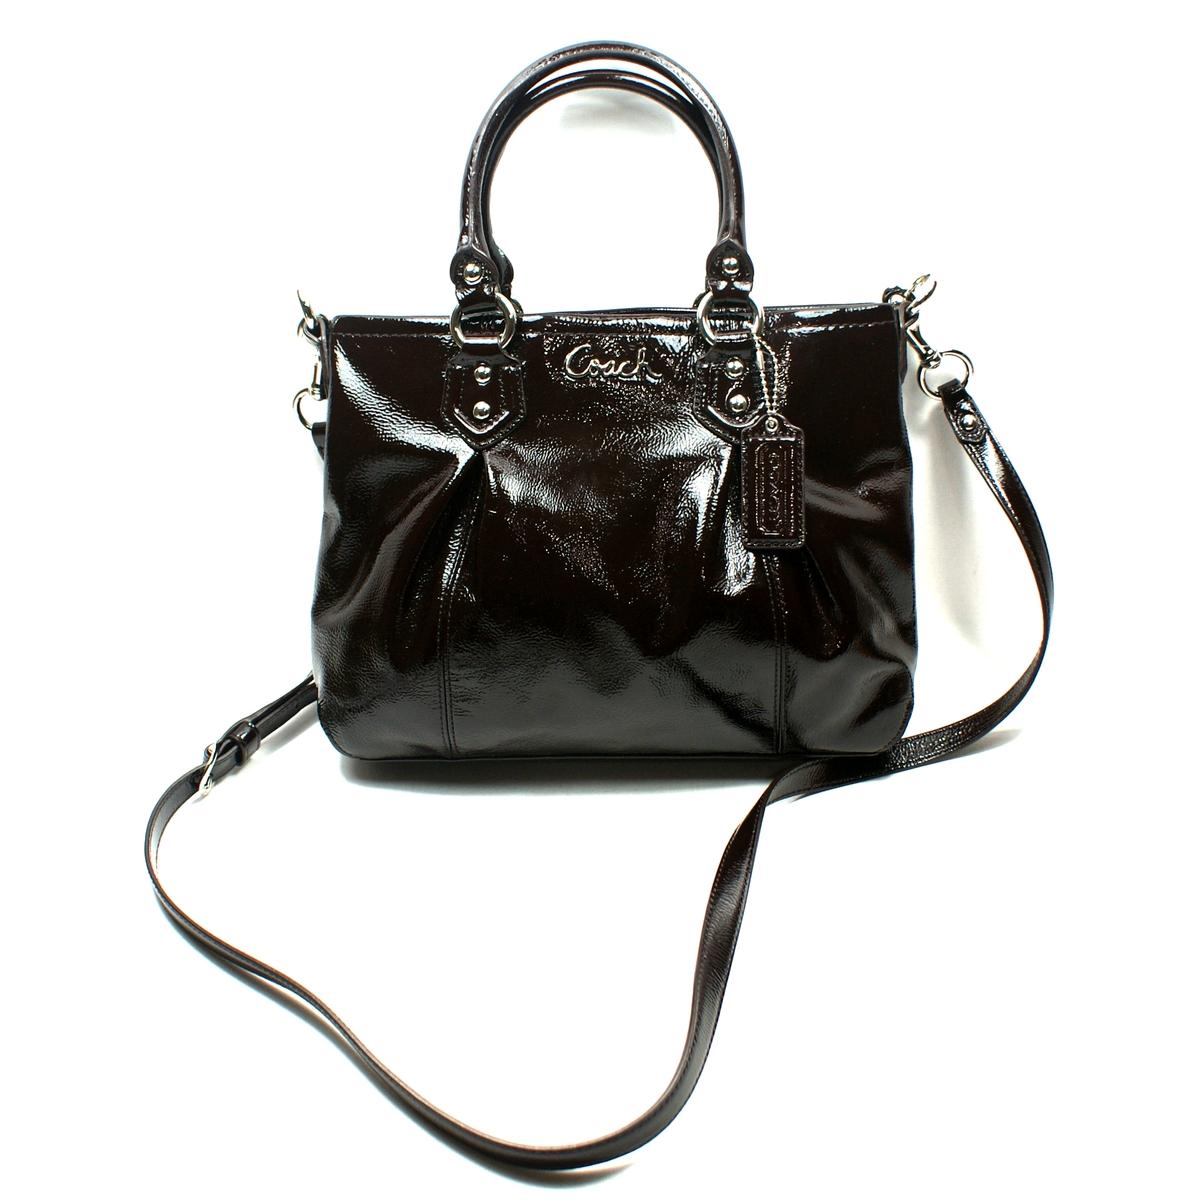 8a03d6b0f Home · Coach · Ashley Patent Leather Mini Tote/ Cross Body Bag. CLICK  THUMBNAIL TO ZOOM. Found ...